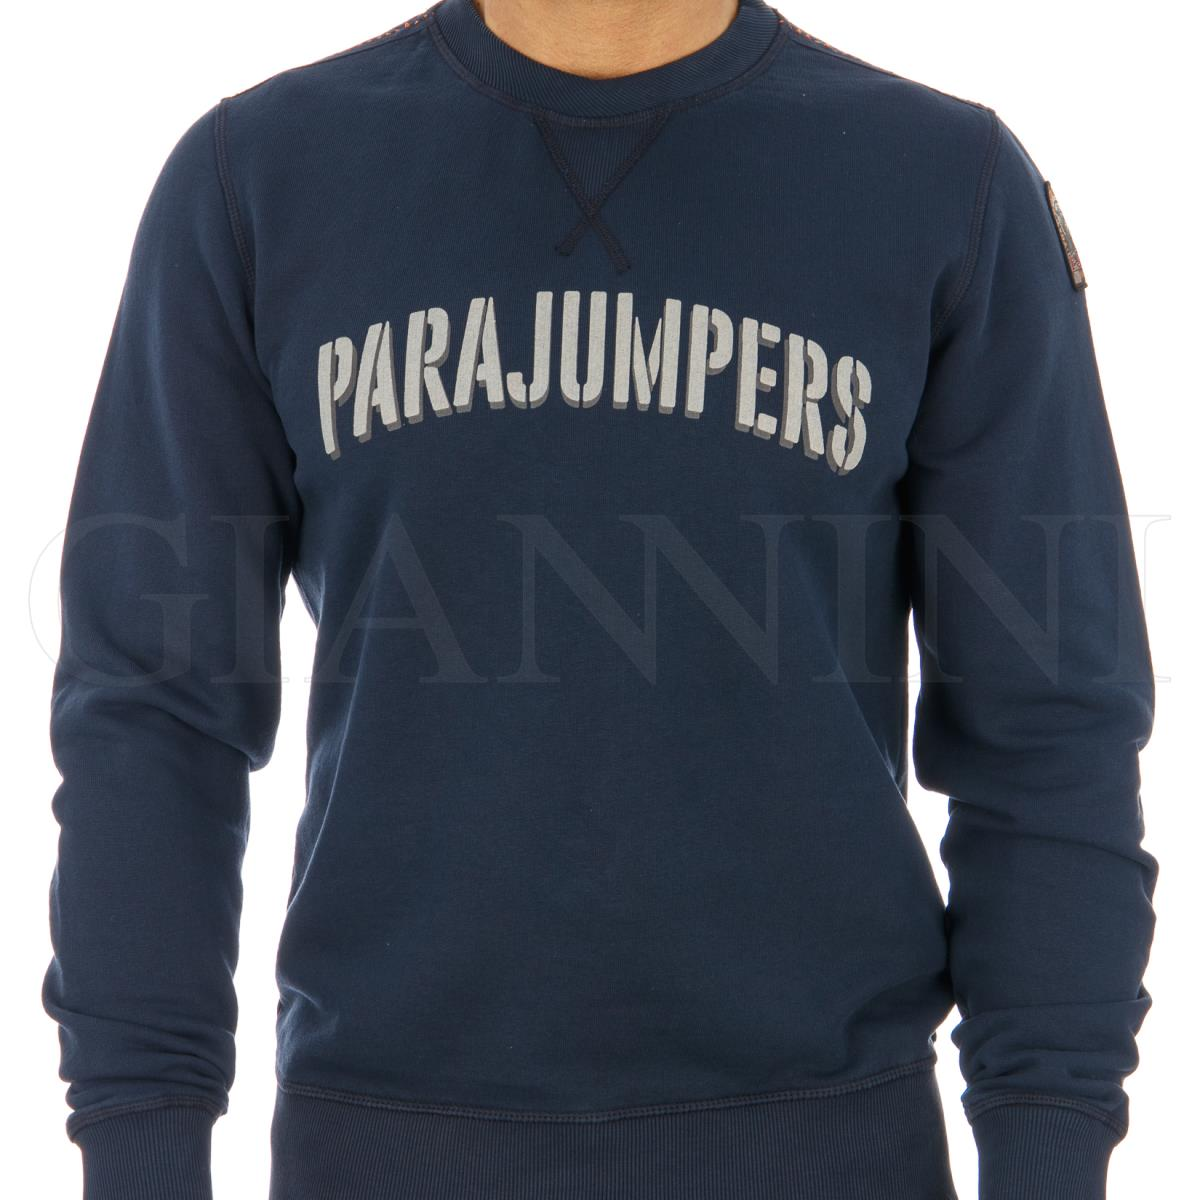 PARAJUMPERS SWEATSHIRT